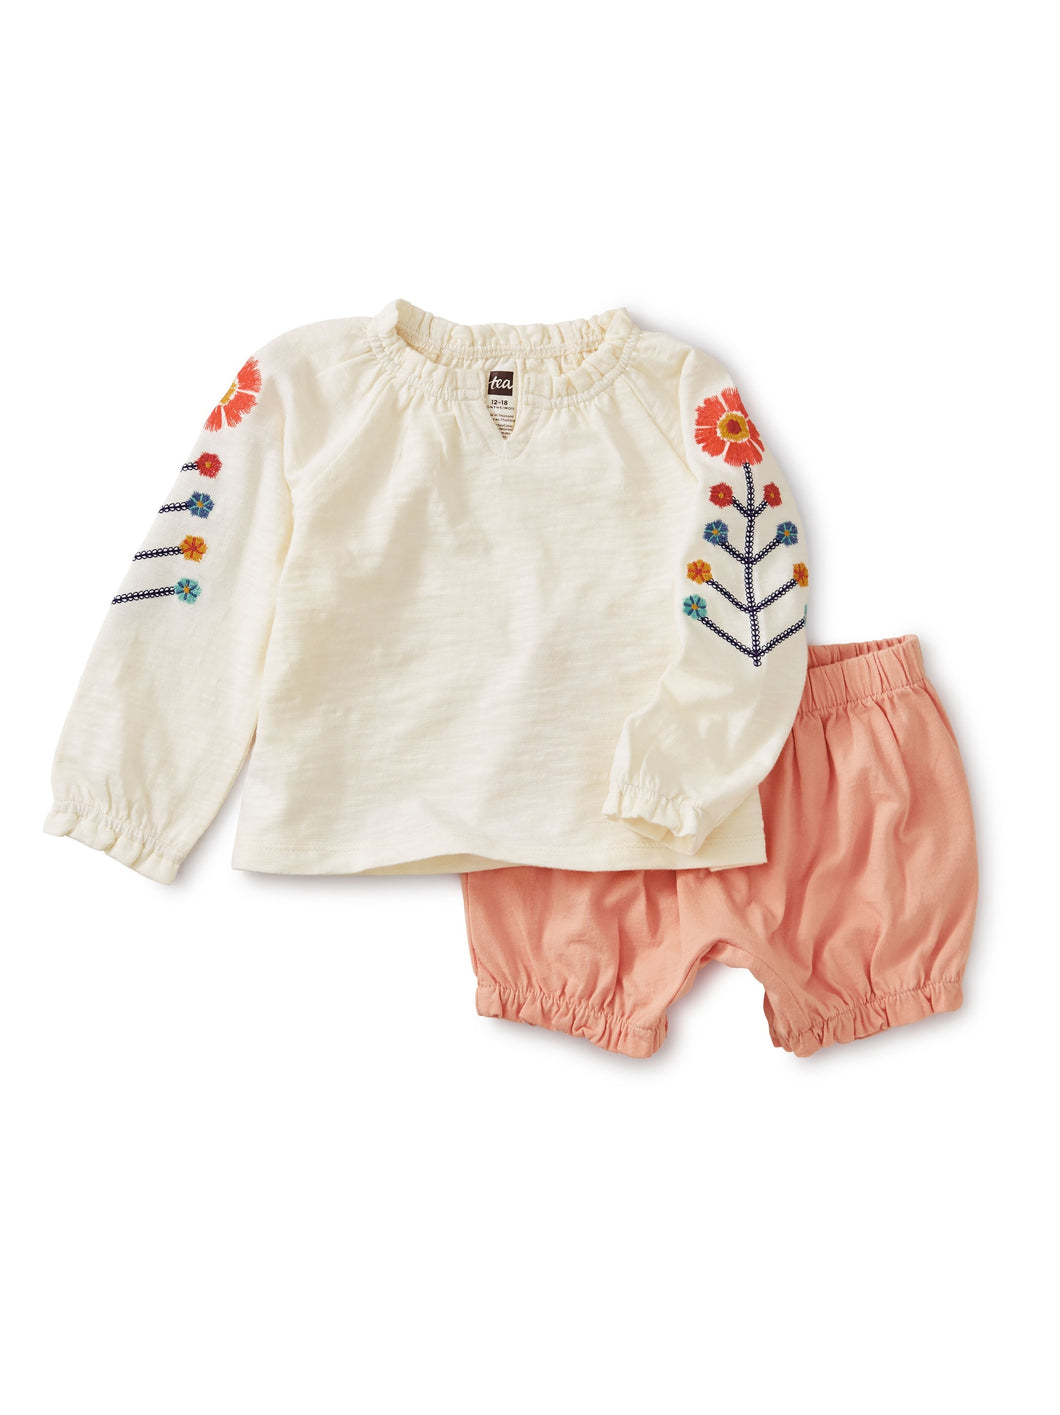 Embroidered Baby Set